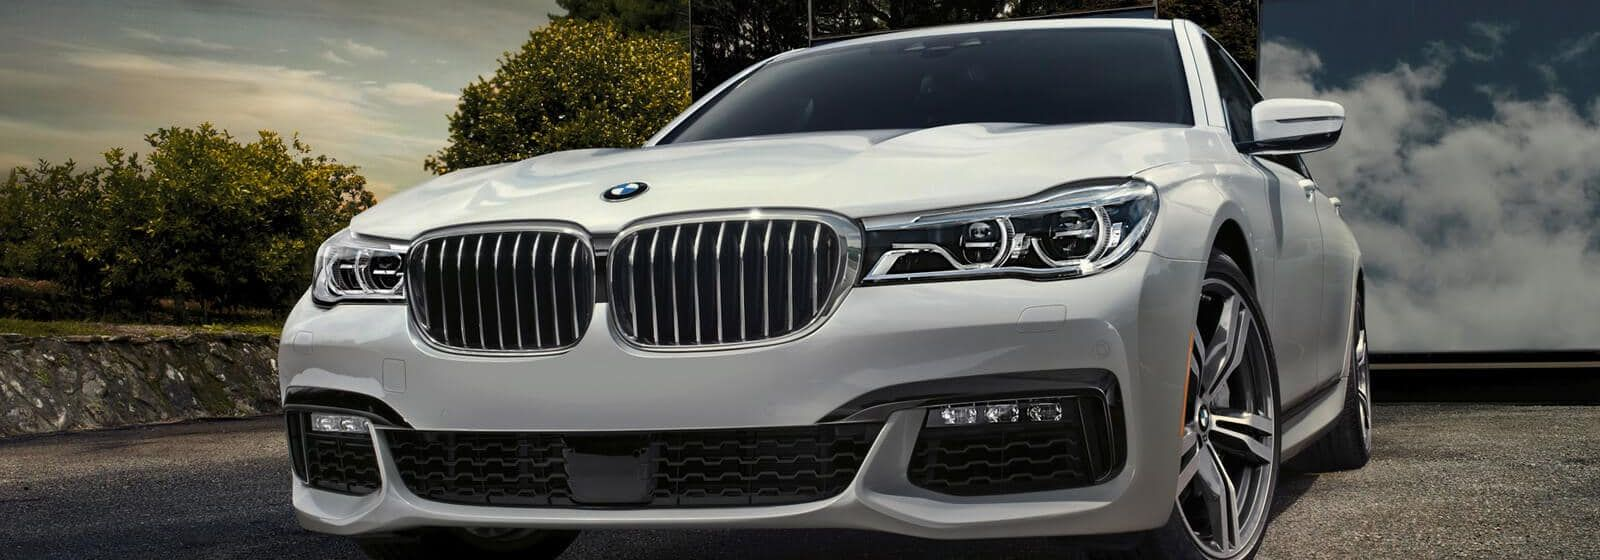 db633f58b86 2018 BMW 7 Series Leasing in Shreveport